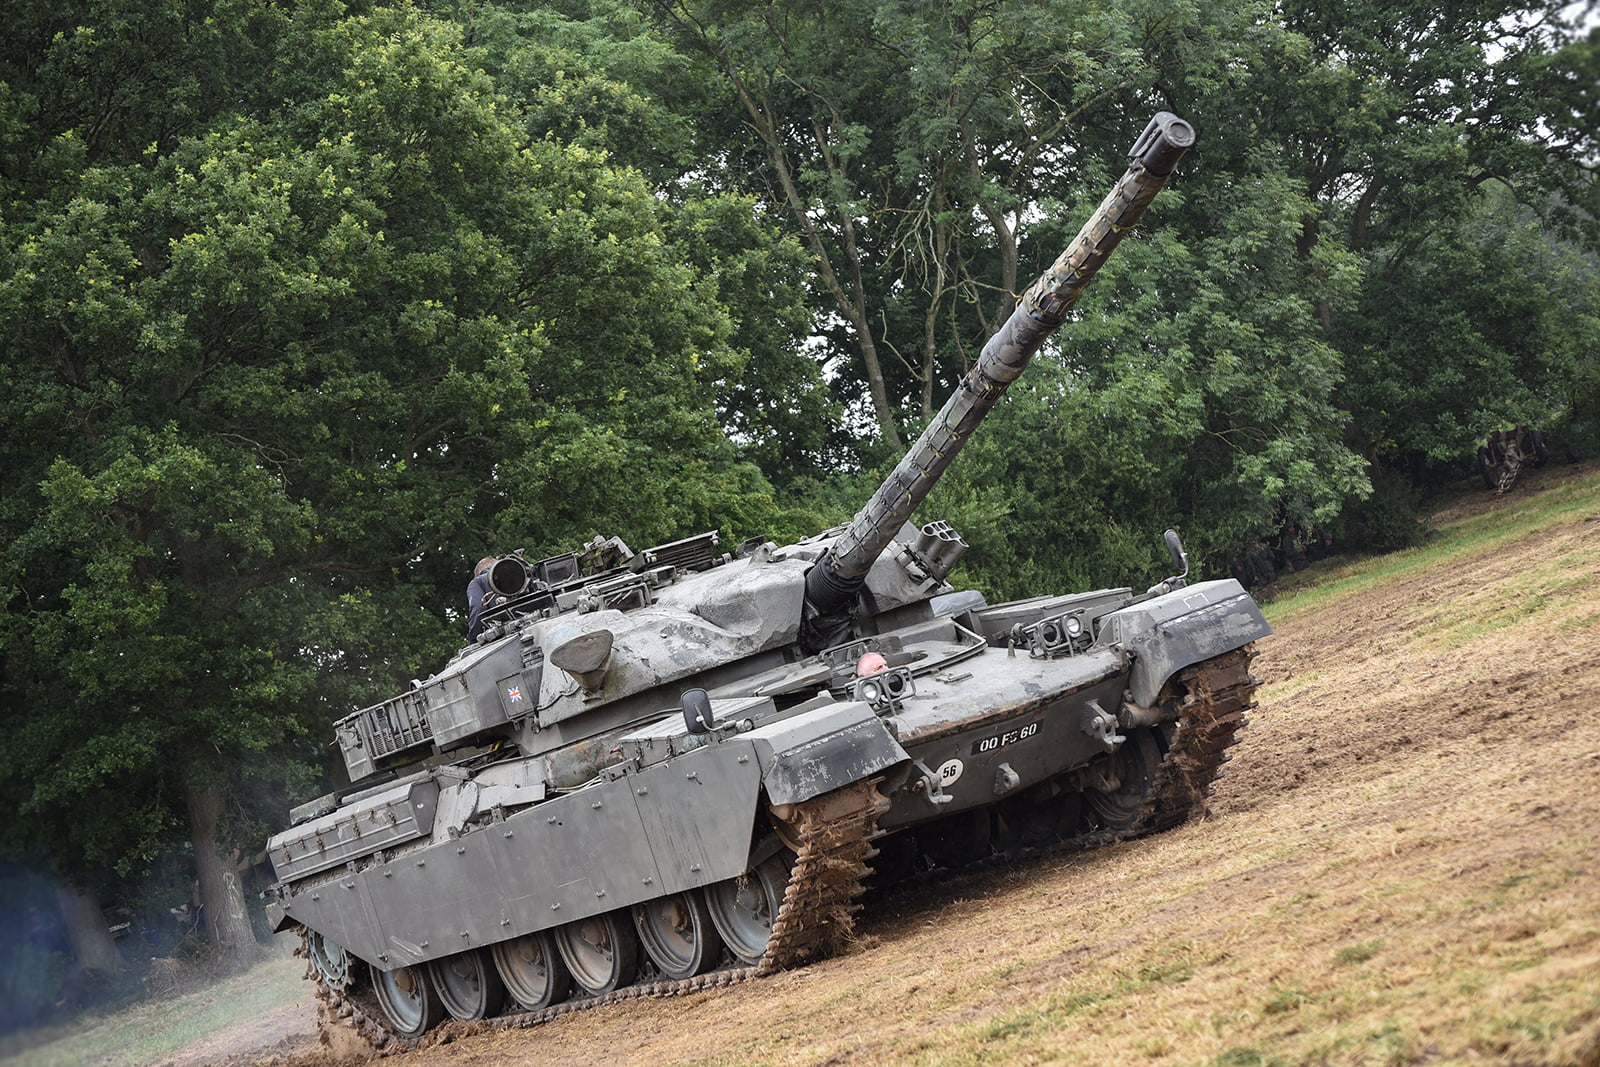 A tank at Capel Military Show